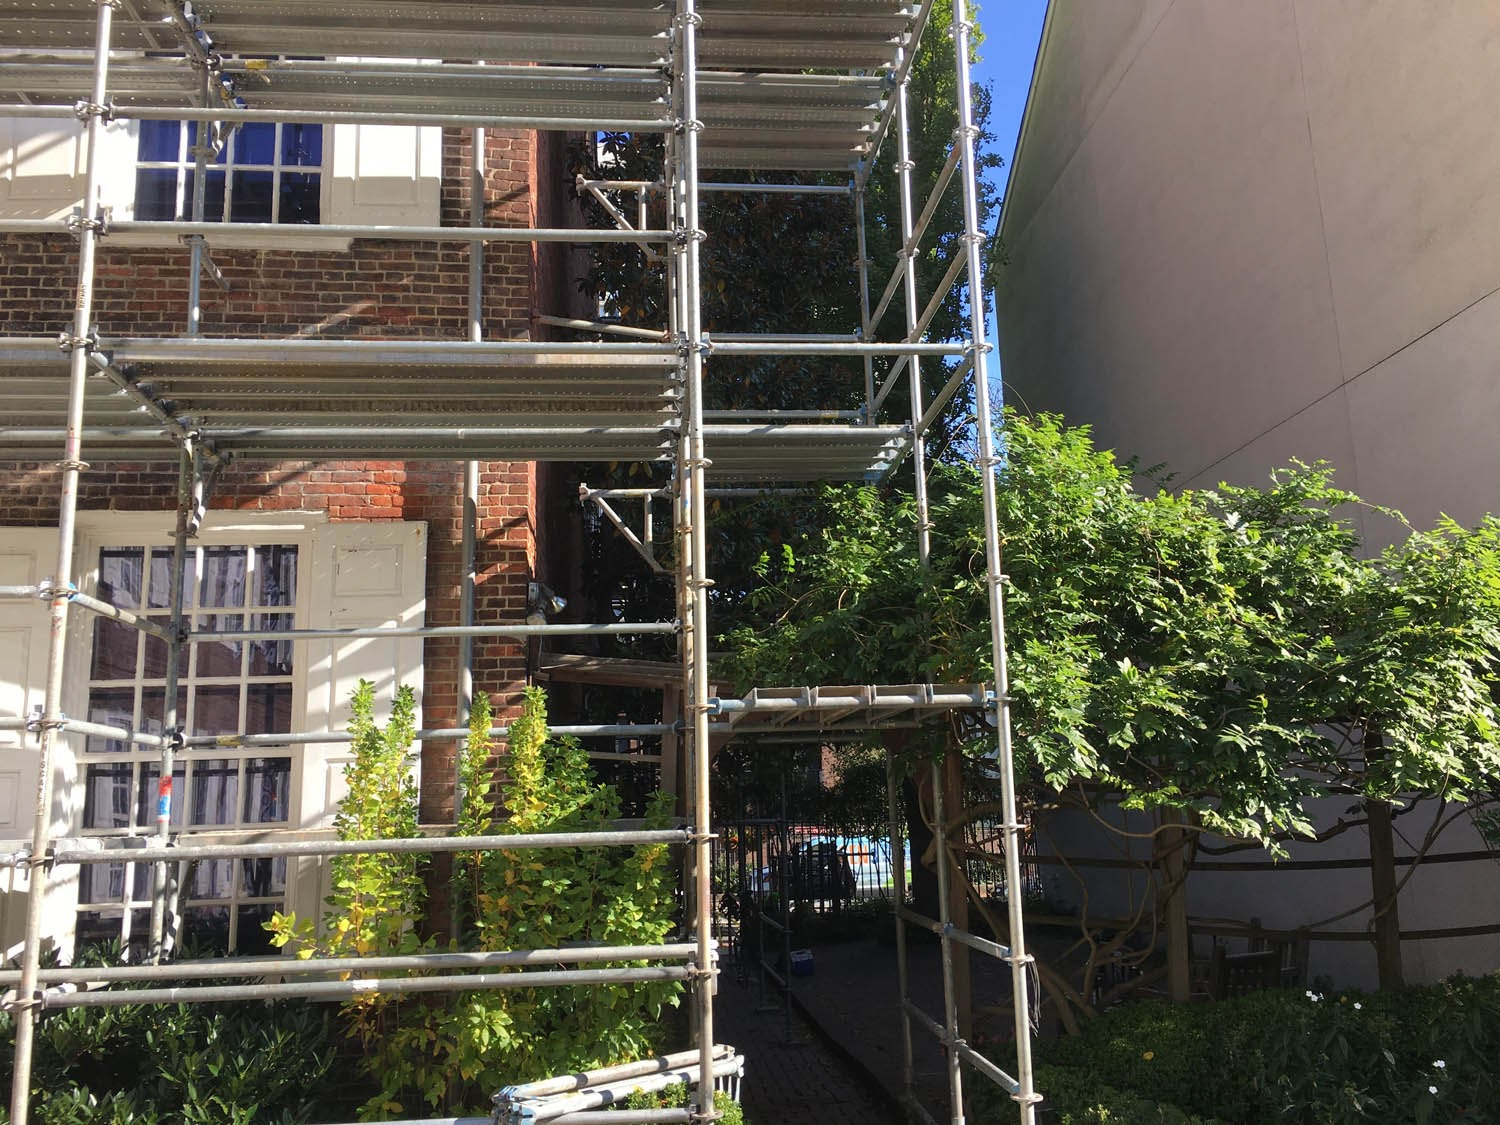 Scaffold, scaffolding, scaffolding, rent, rents, scaffolding rental, construction, ladders, equipment rental, scaffolding Philadelphia, scaffold PA, philly, building materials, NJ, DE, MD, NY, renting, leasing, inspection, general contractor, masonry, 215 743-2200, superior scaffold, electrical, HVAC, swing stage, swings, suspended scaffold, overhead protection, canopy, transport platform, lift, hoist, mast climber, access, buck hoist, powel house, historic